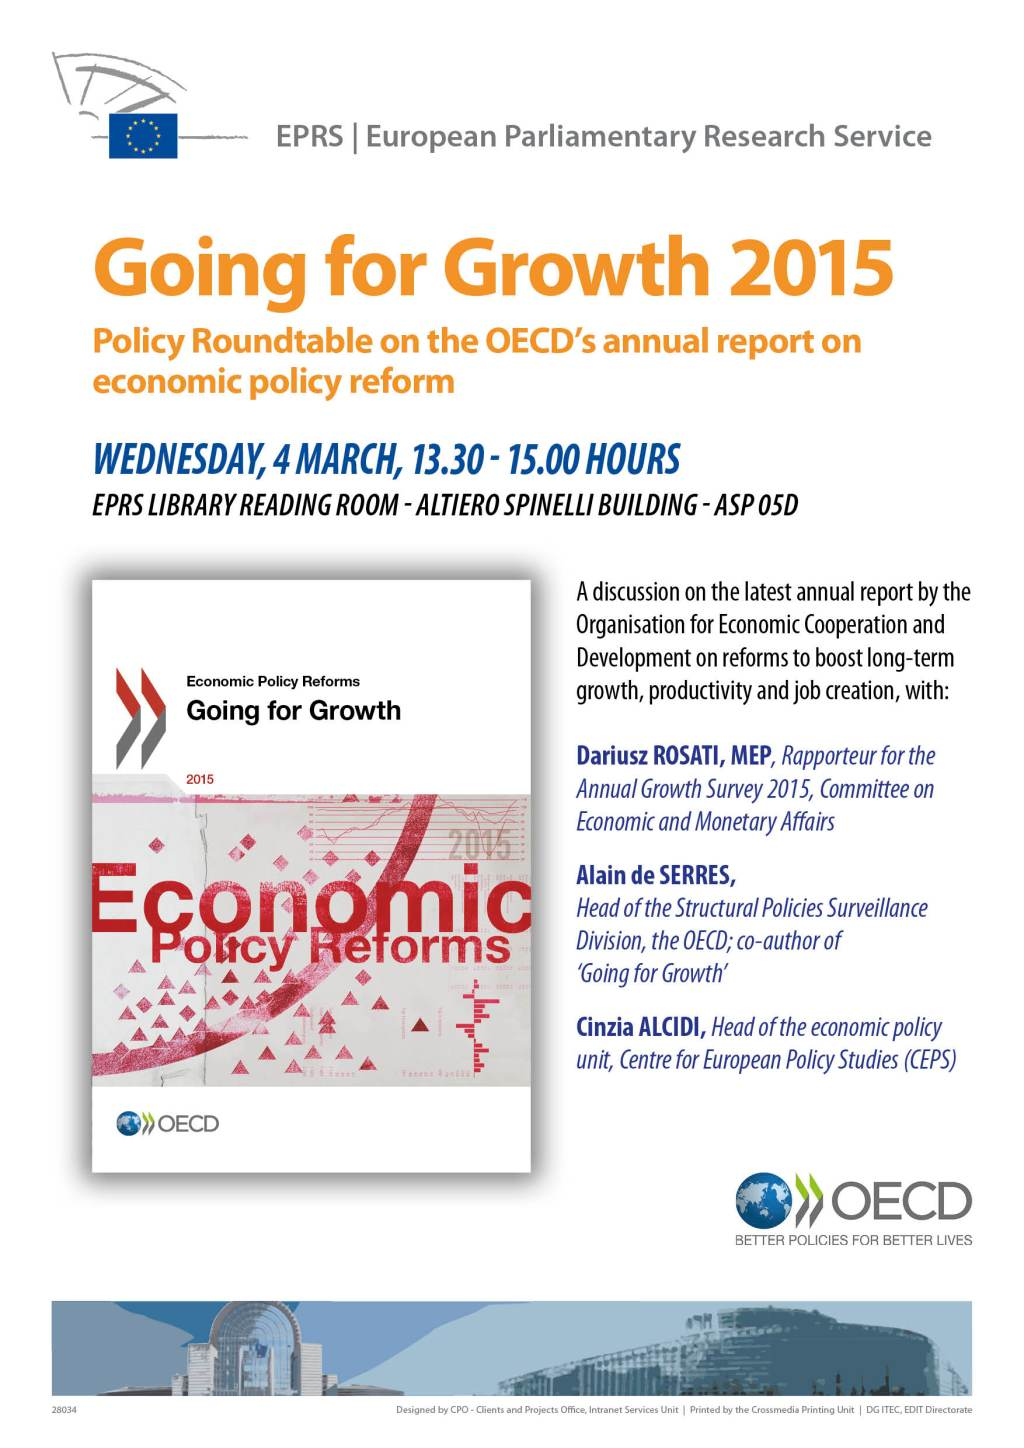 EPRS hosts debate on OECD's flagship report on growth on 4 March 2015